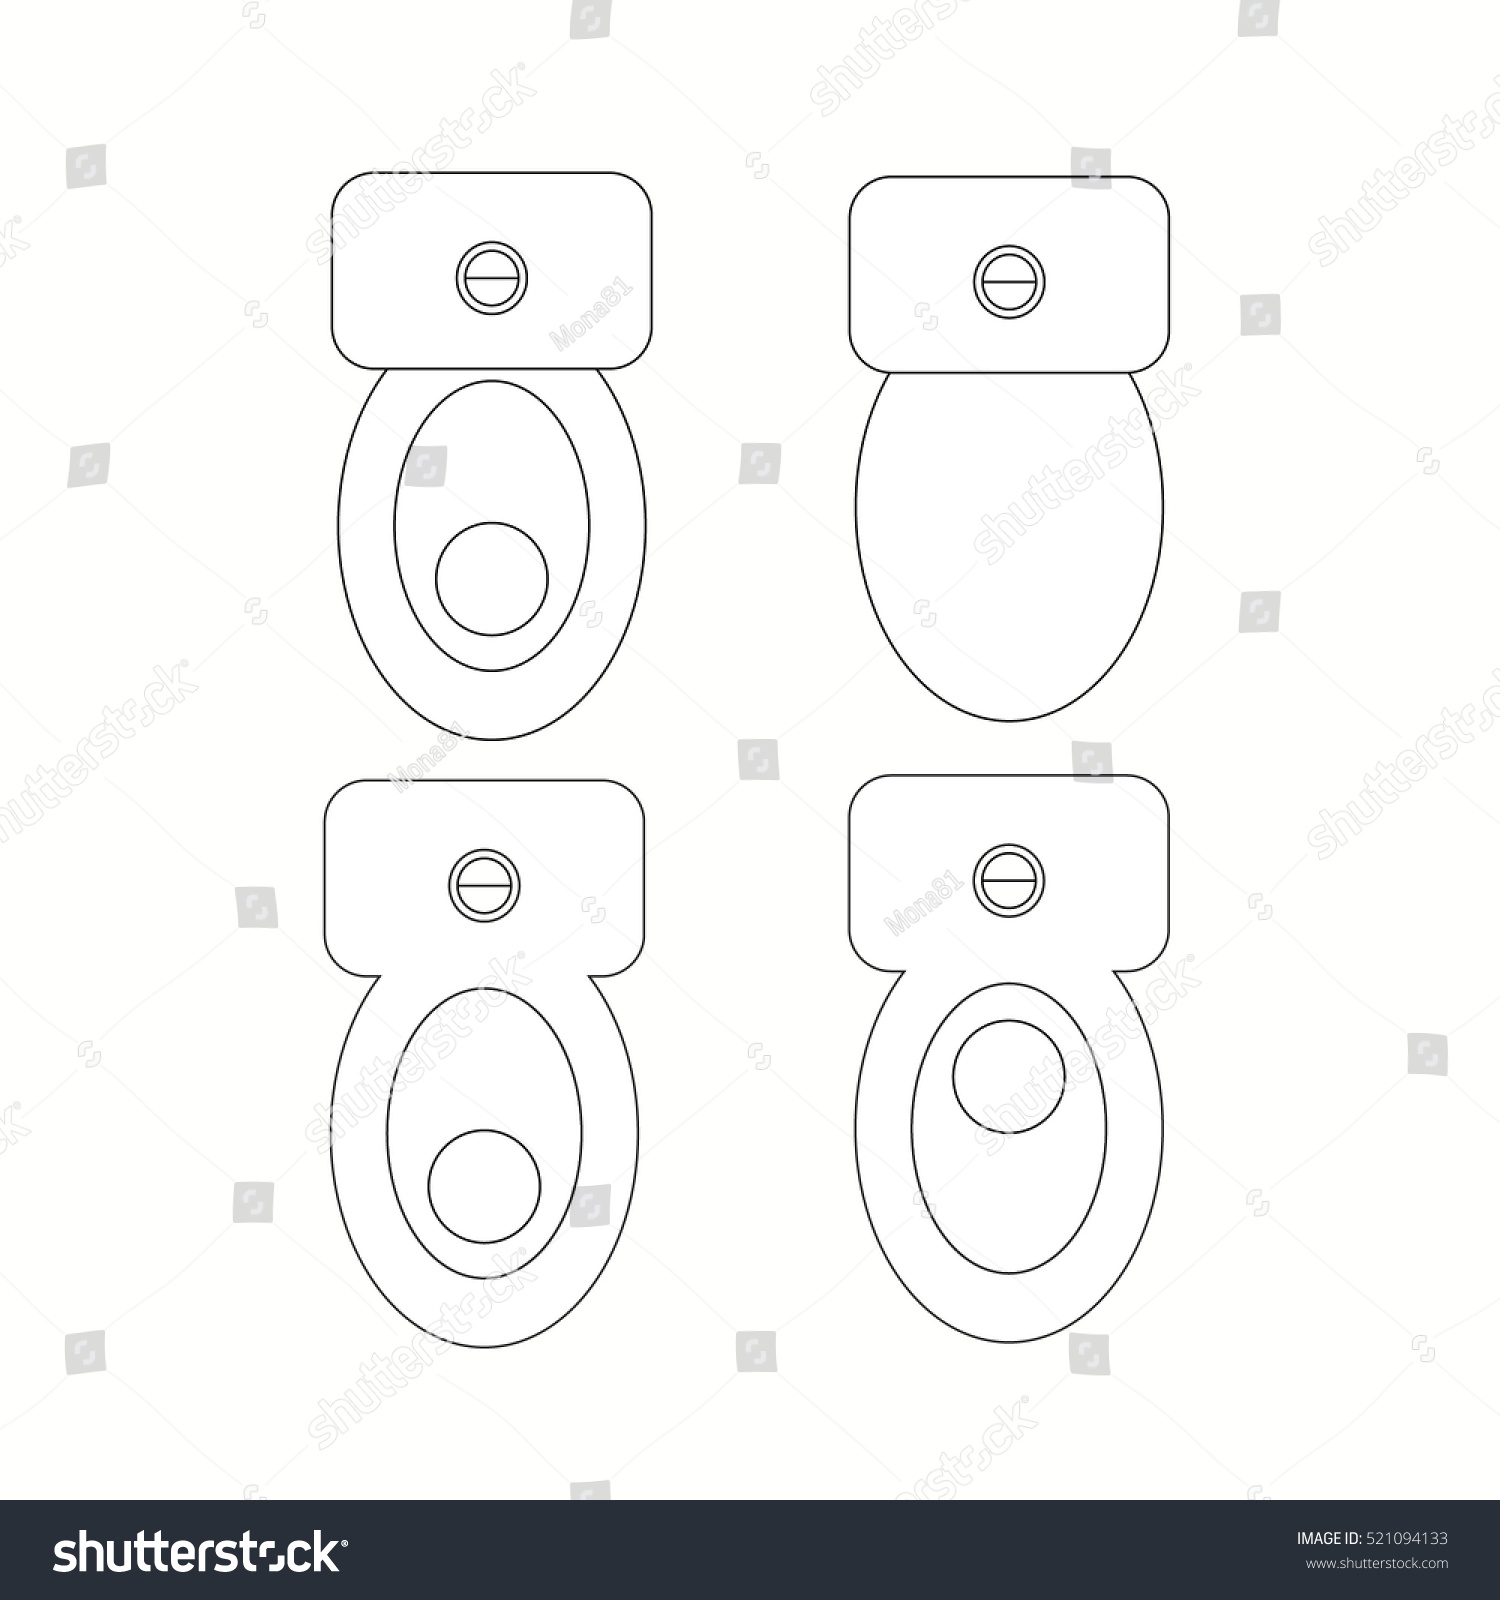 Architect Toilet Symbol : Top view toilet furniture symbols used stock vector